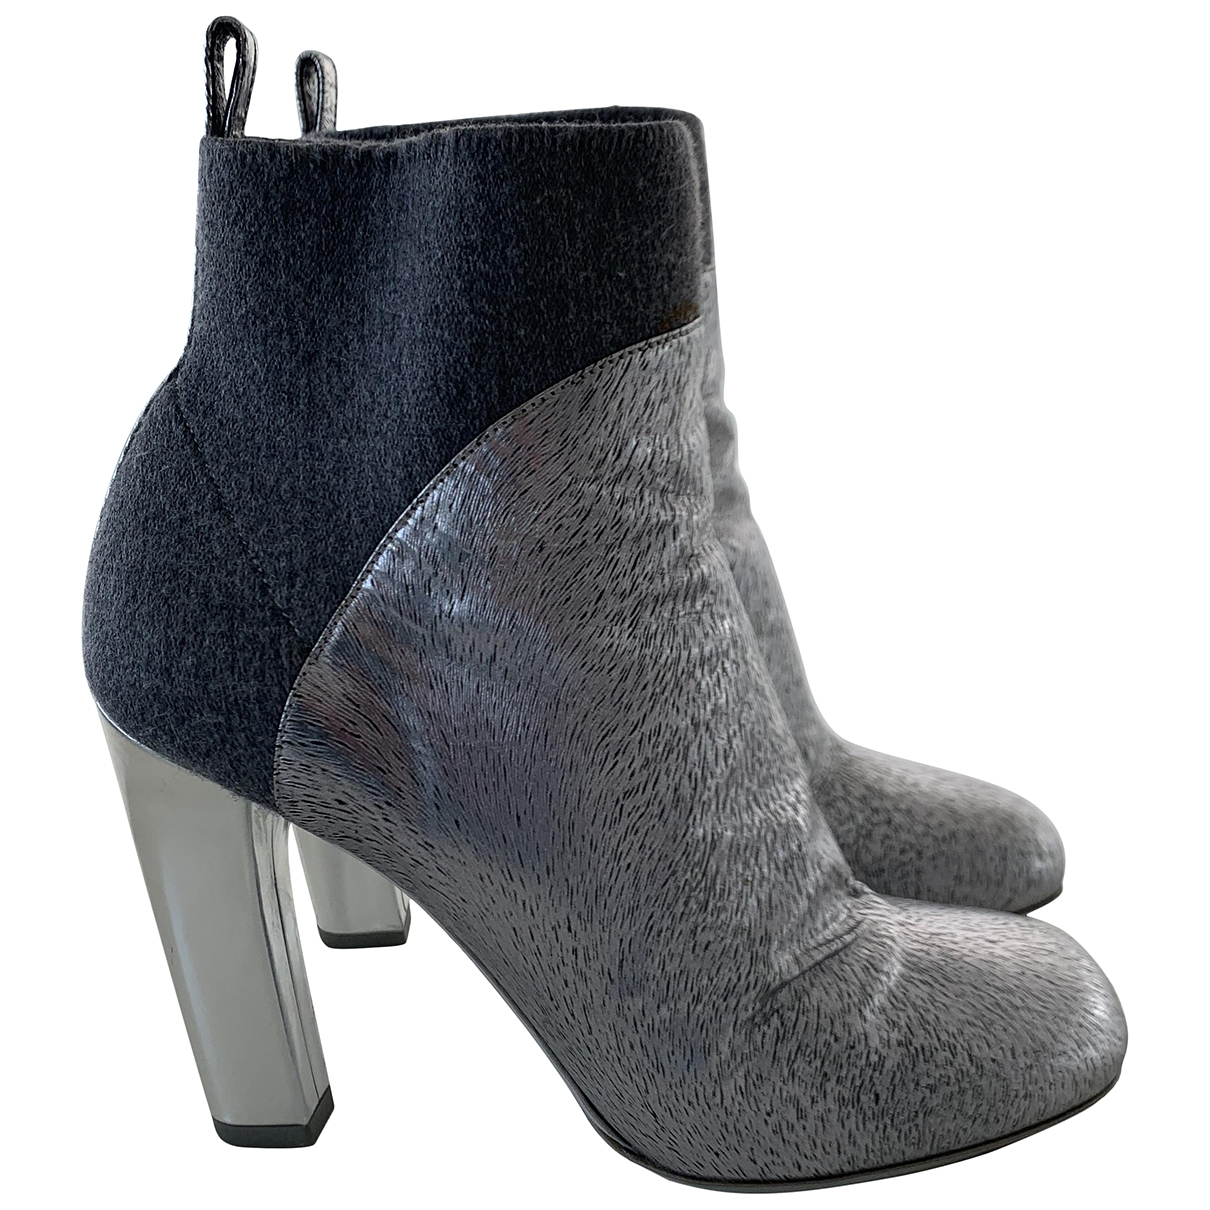 Dries Van Noten \N Silver Leather Ankle boots for Women 38 EU